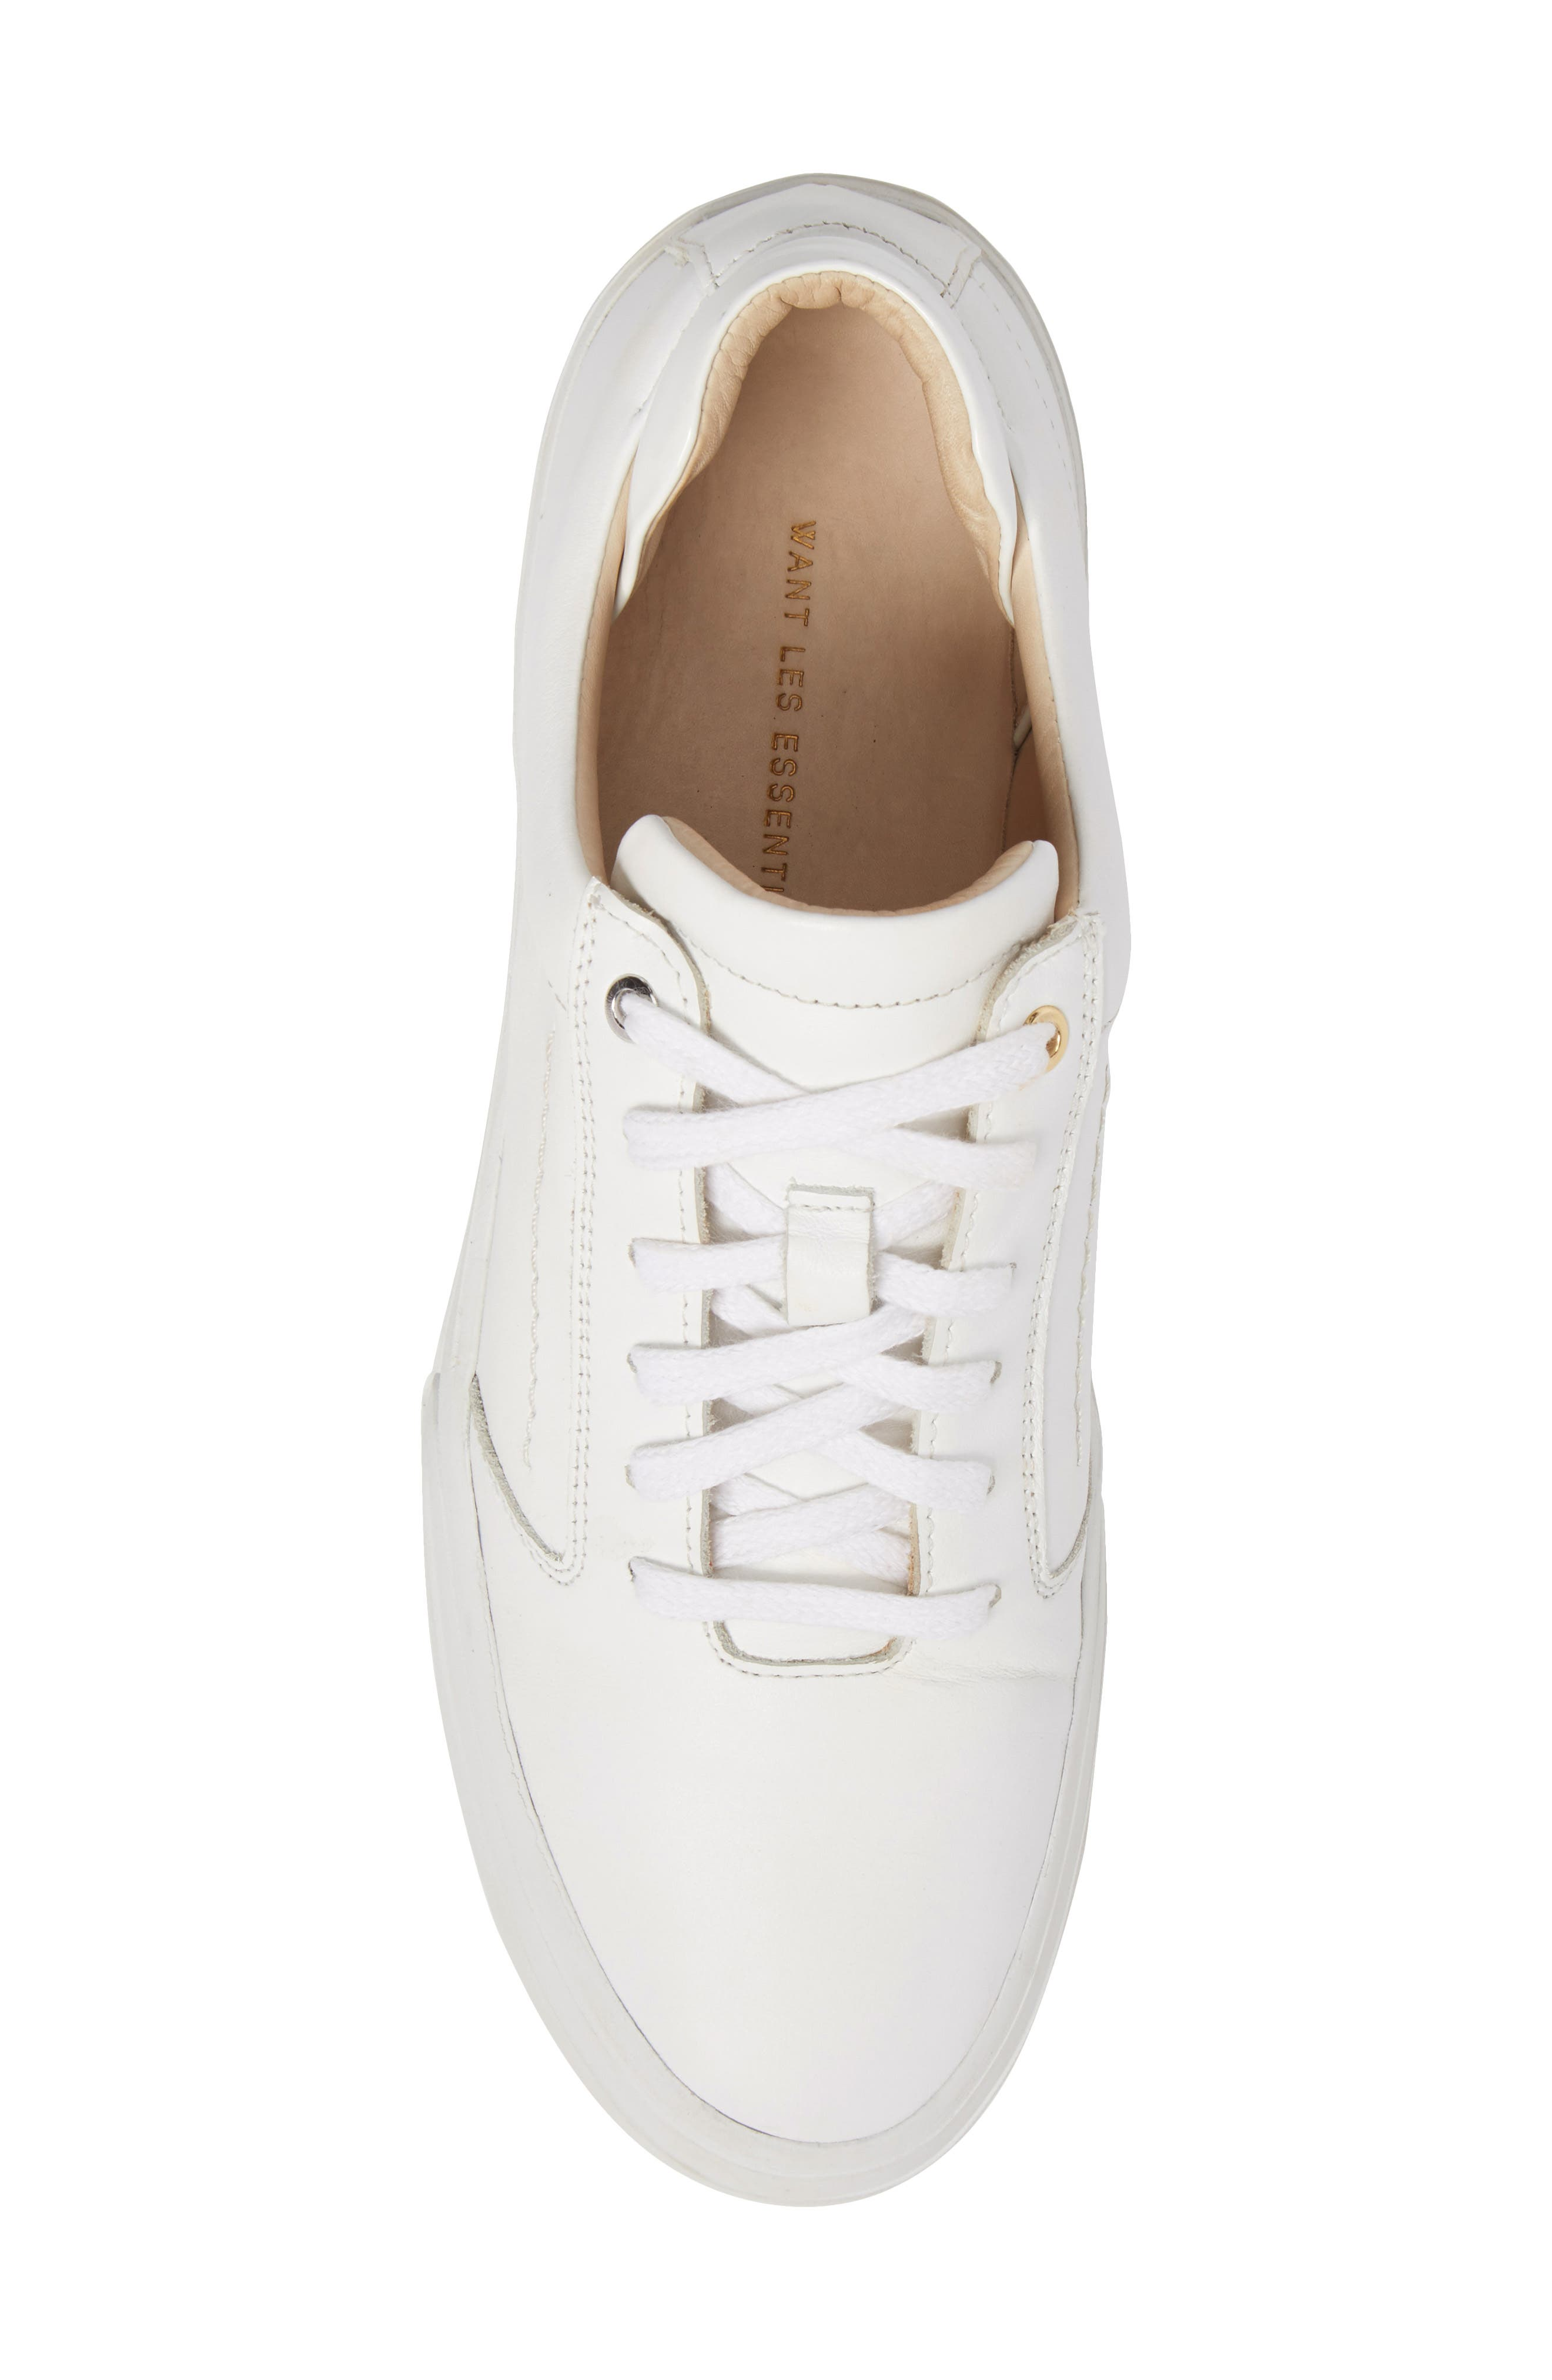 Lalibela Sneaker,                             Alternate thumbnail 5, color,                             WHITE/PATENT WHITE